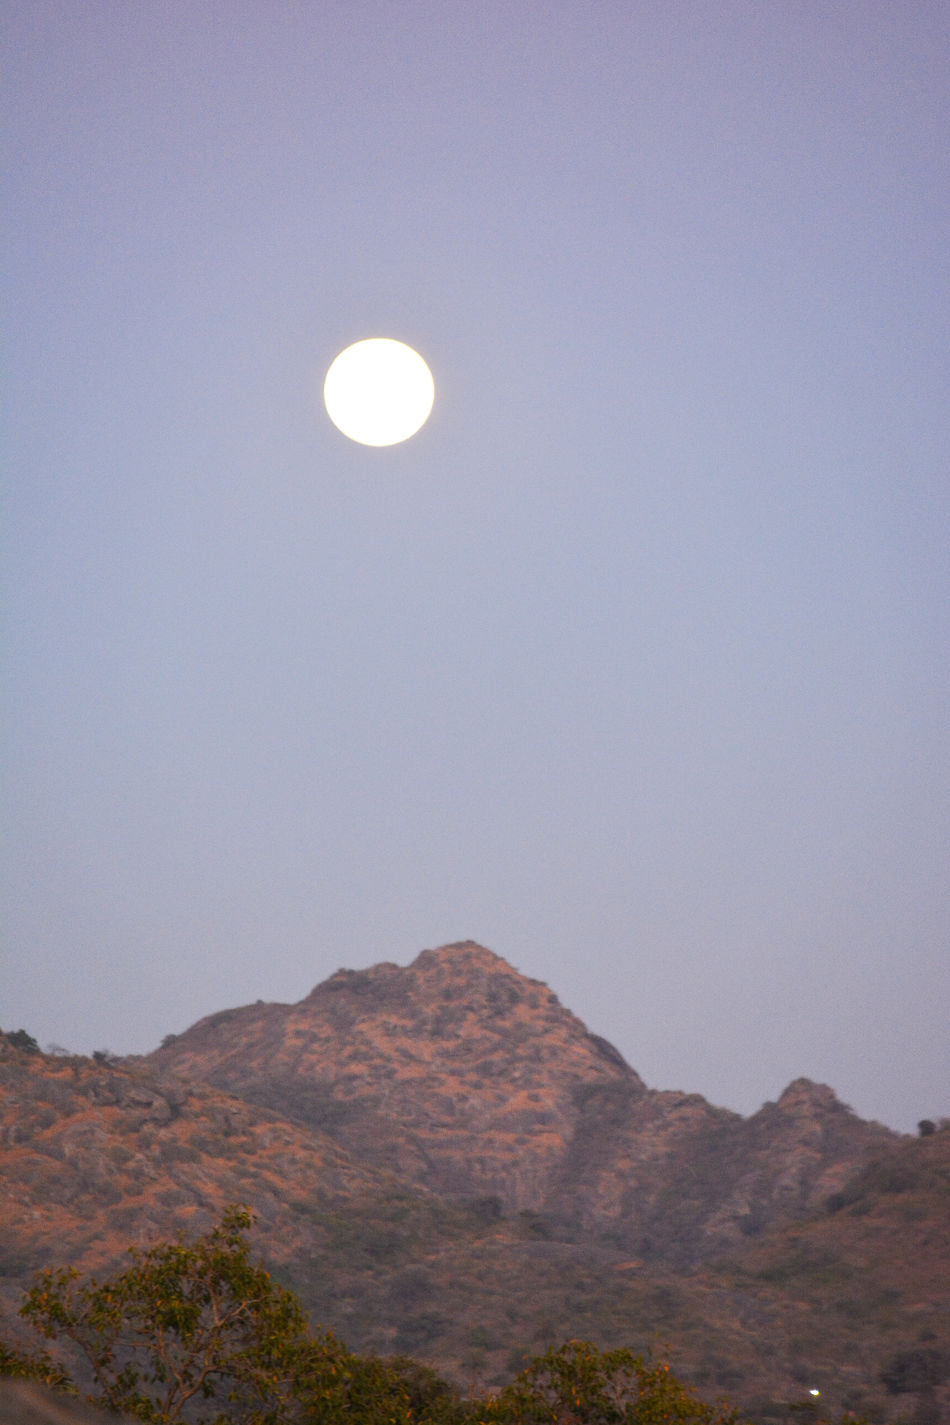 Full moon at 4003ft above from sea level!!! Took it at Mount Abu famous hill station at India the beauty is went to see sunset and immediately after sun down moon appears !!! Full Moon Moon At Sunset Experimental Photography Travel Photography Mount Abu Rajasthan, India MOUNT ABU SUNSET Glowing Outdoors Low Angle View New Life